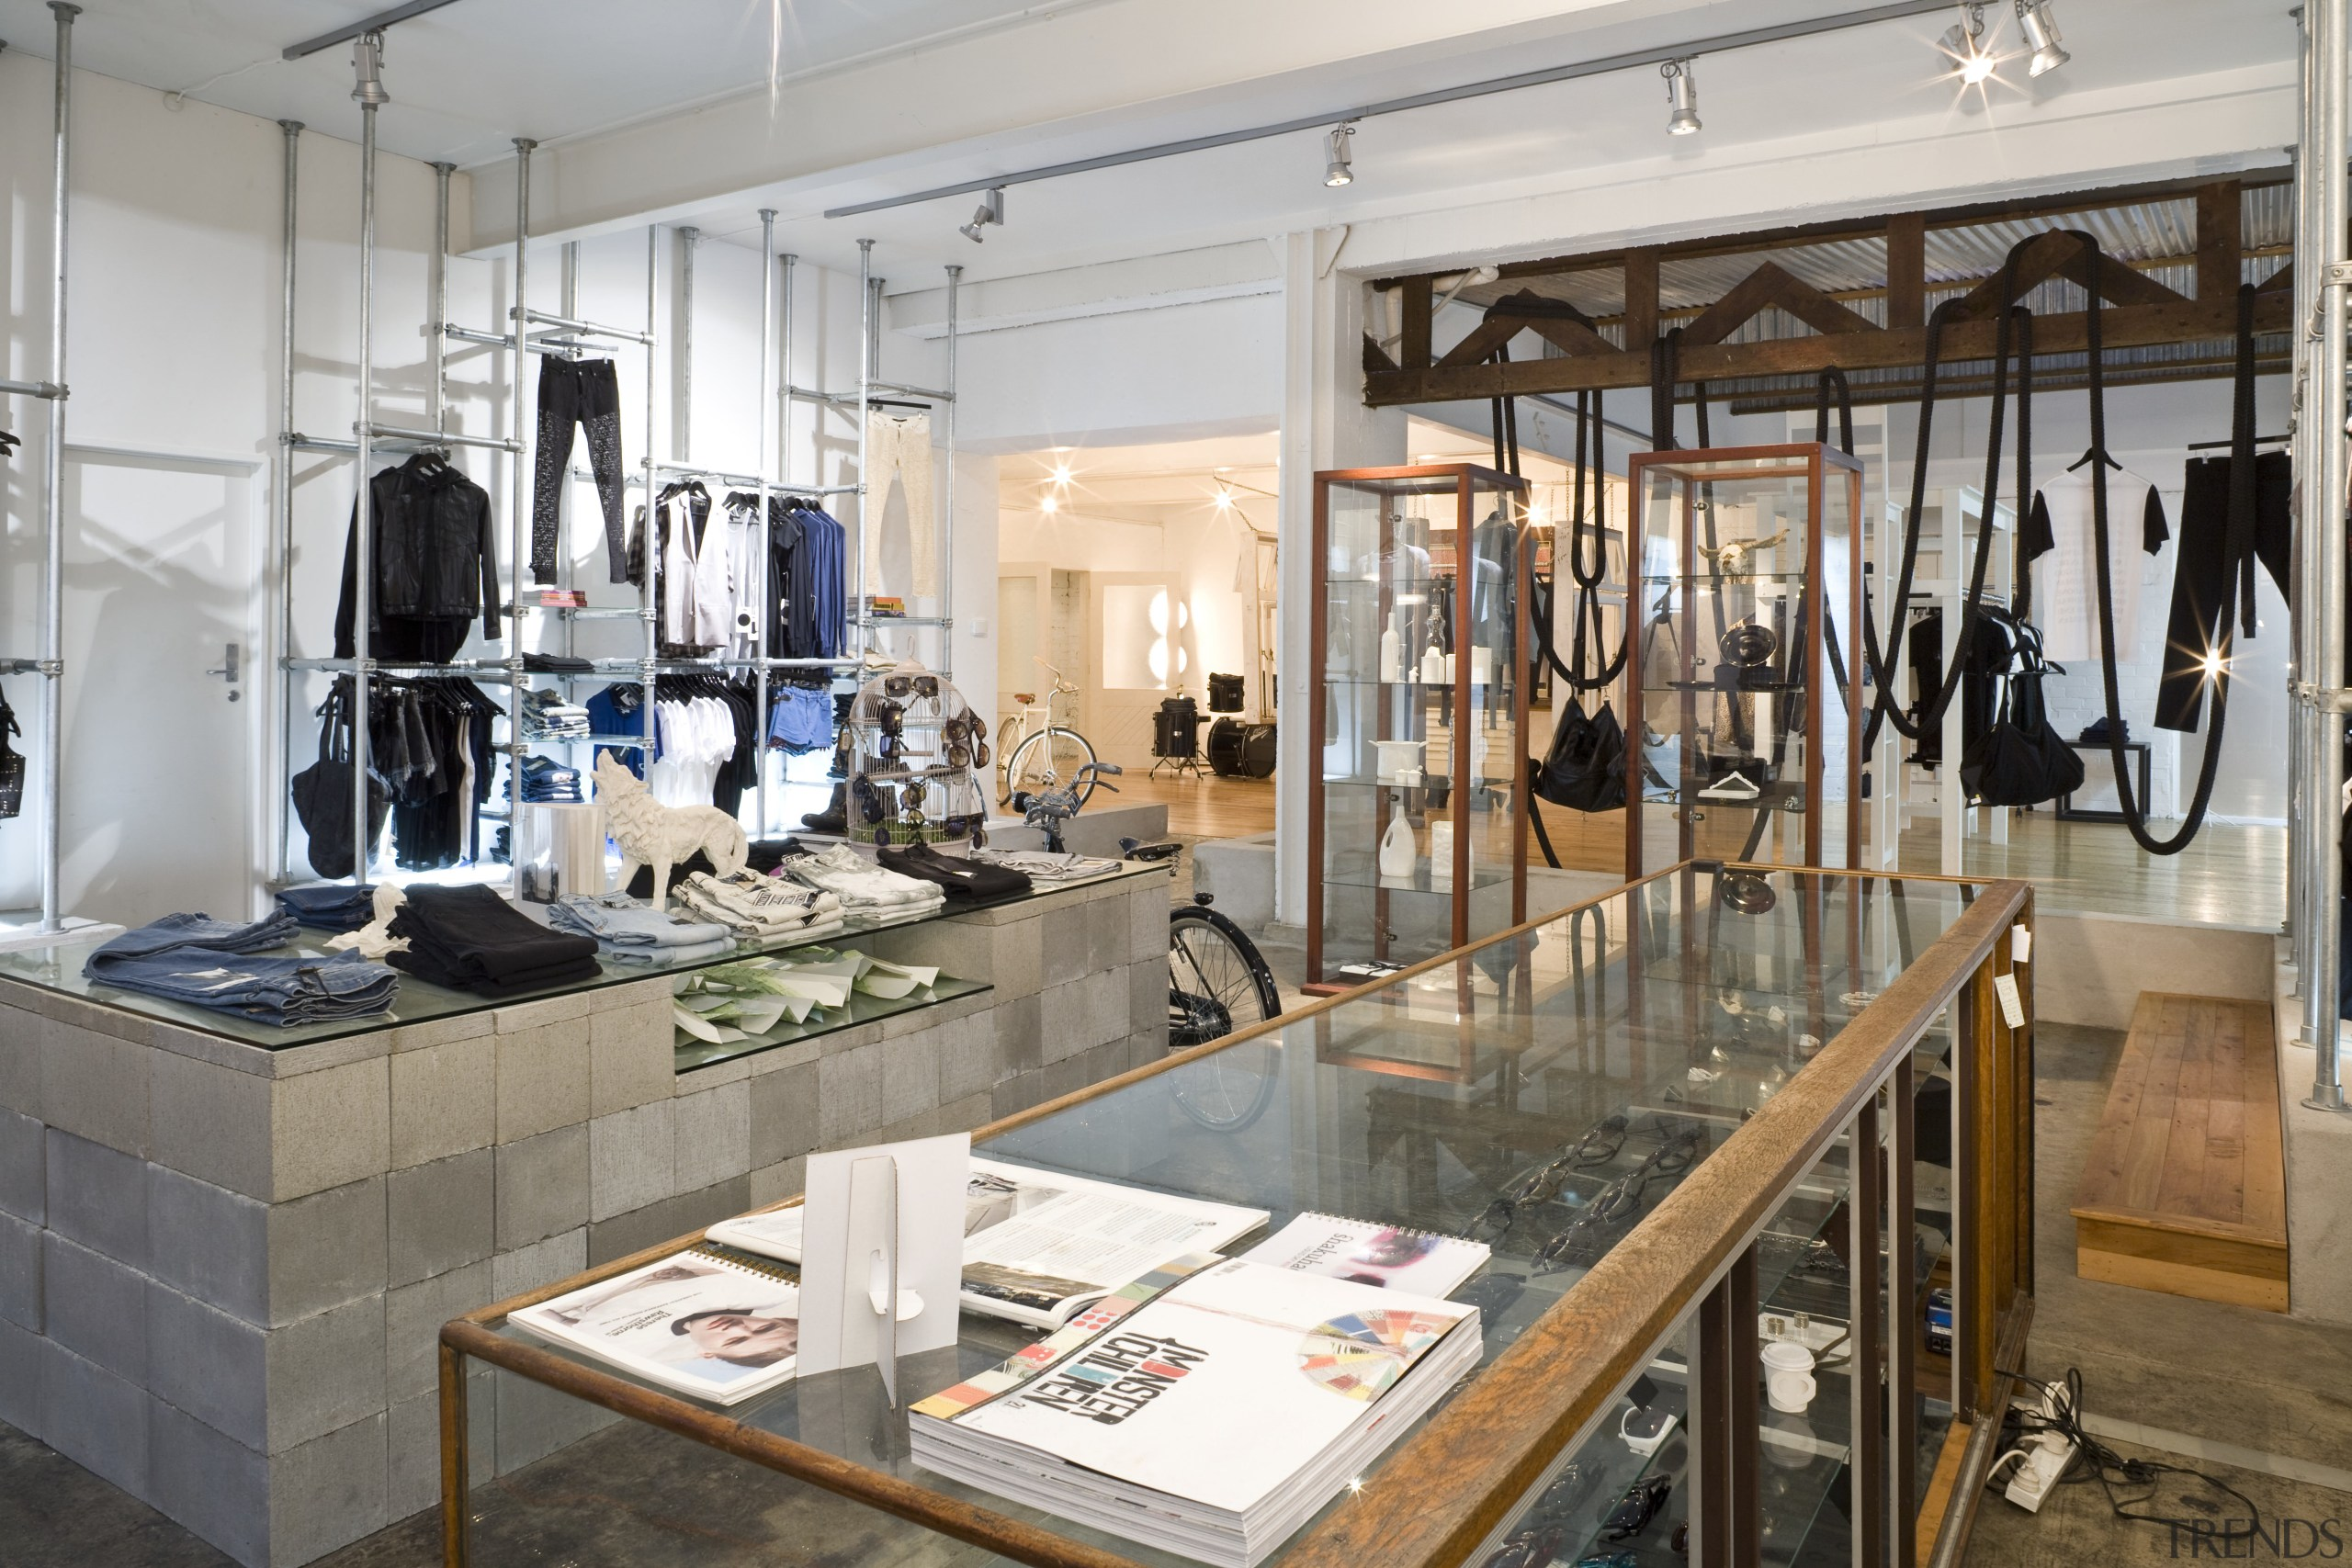 Interior view of the clothing displays at the boutique, interior design, retail, gray